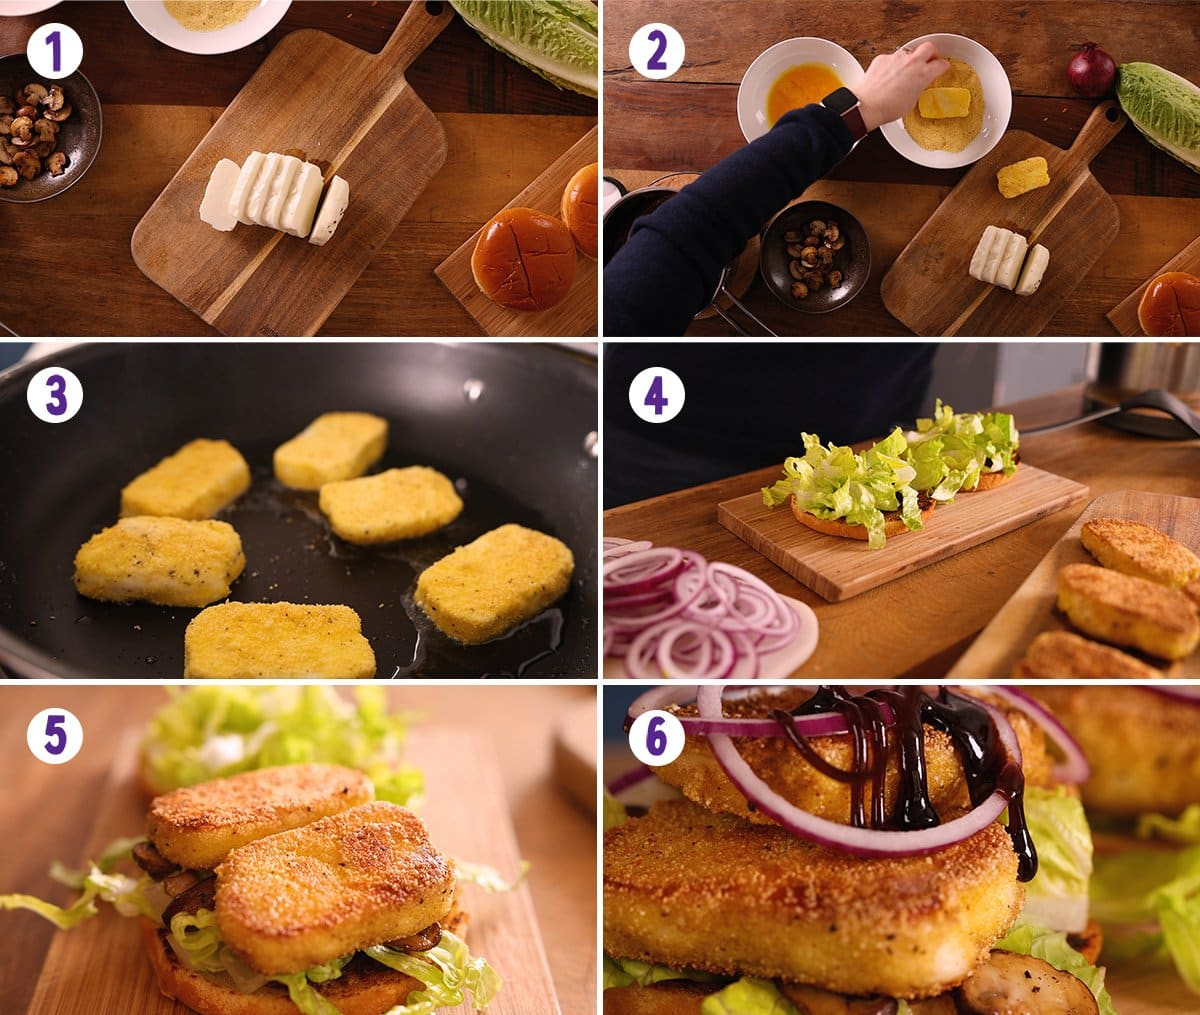 6 image collage showing how to make crispy halloumi burgers